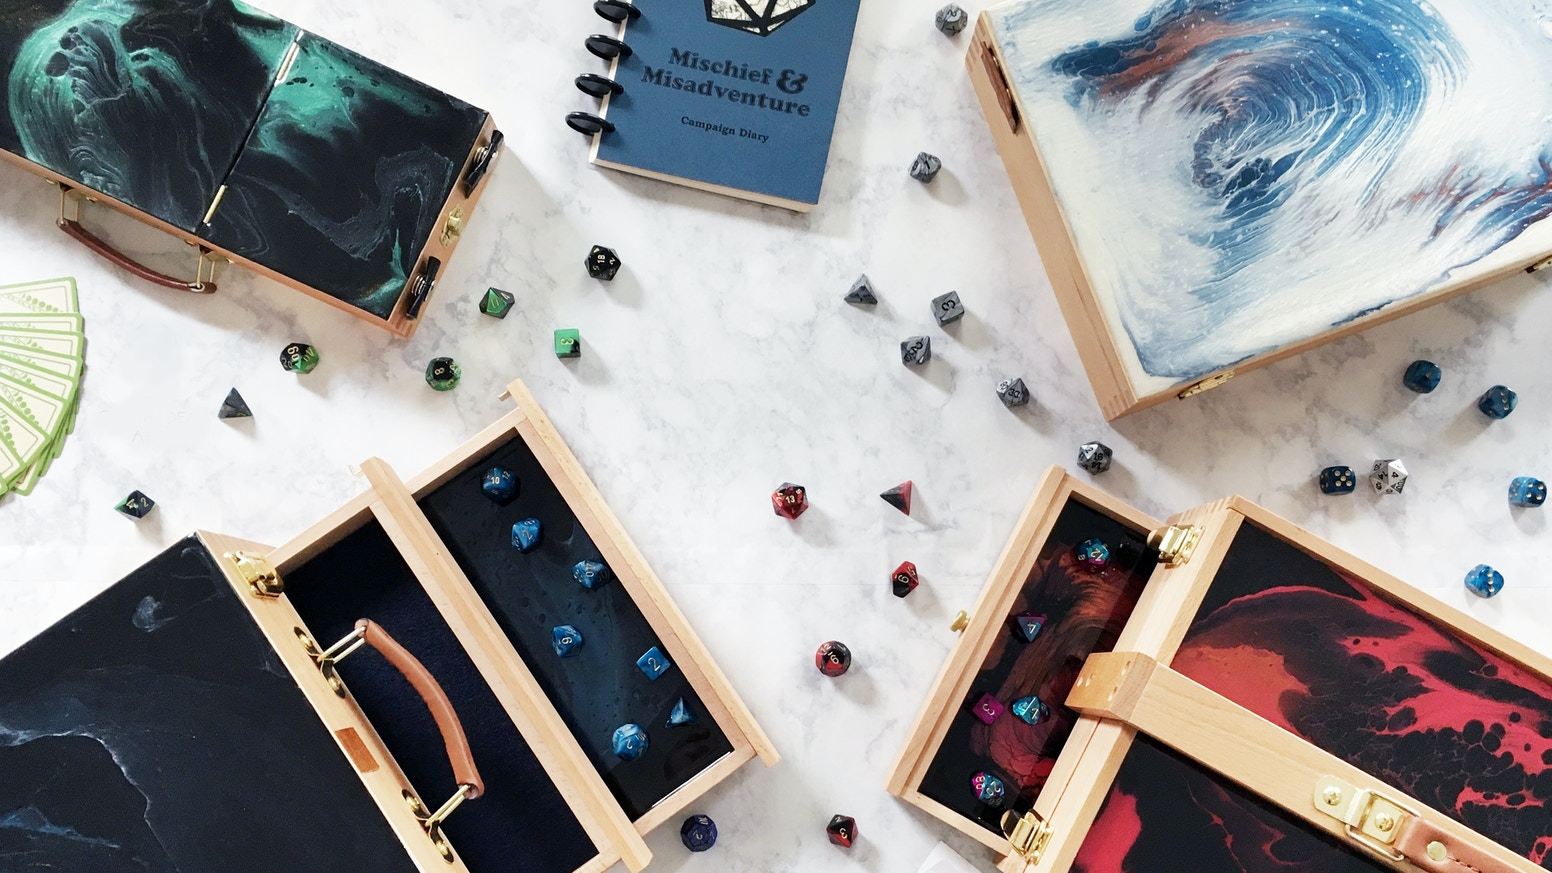 Available for Pre-Order January 4! A new line of bespoke tabletop gaming storage perfect for your next adventure. Each piece is hand painted and completely one-of-a-kind.